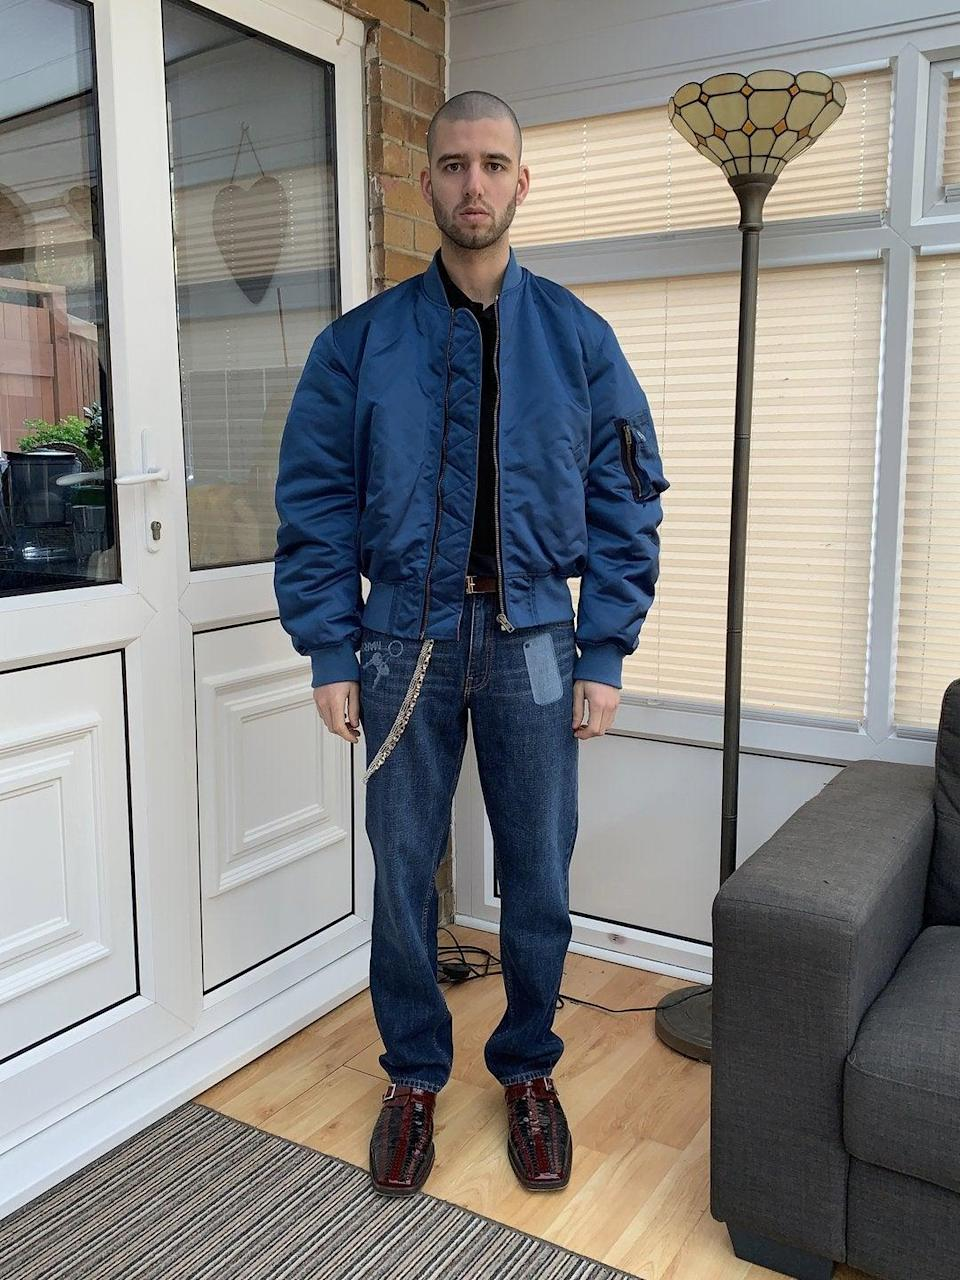 """$1,000+ is a lot to spend on a Father's Day gift, we know that. But this reversible bomber (the inside is orange) is not only a twofer gift, it's also something your dad can wear and cherish forever. <br> <br> <strong>Martine Rose</strong> Bomber Jacket, $, available at <a href=""""https://go.skimresources.com/?id=30283X879131&url=https%3A%2F%2Fwww.martine-rose.com%2Fproducts%2Fbomber-jacket-nylon-in-navy%23i0"""" rel=""""nofollow noopener"""" target=""""_blank"""" data-ylk=""""slk:Martine Rose"""" class=""""link rapid-noclick-resp"""">Martine Rose</a>"""